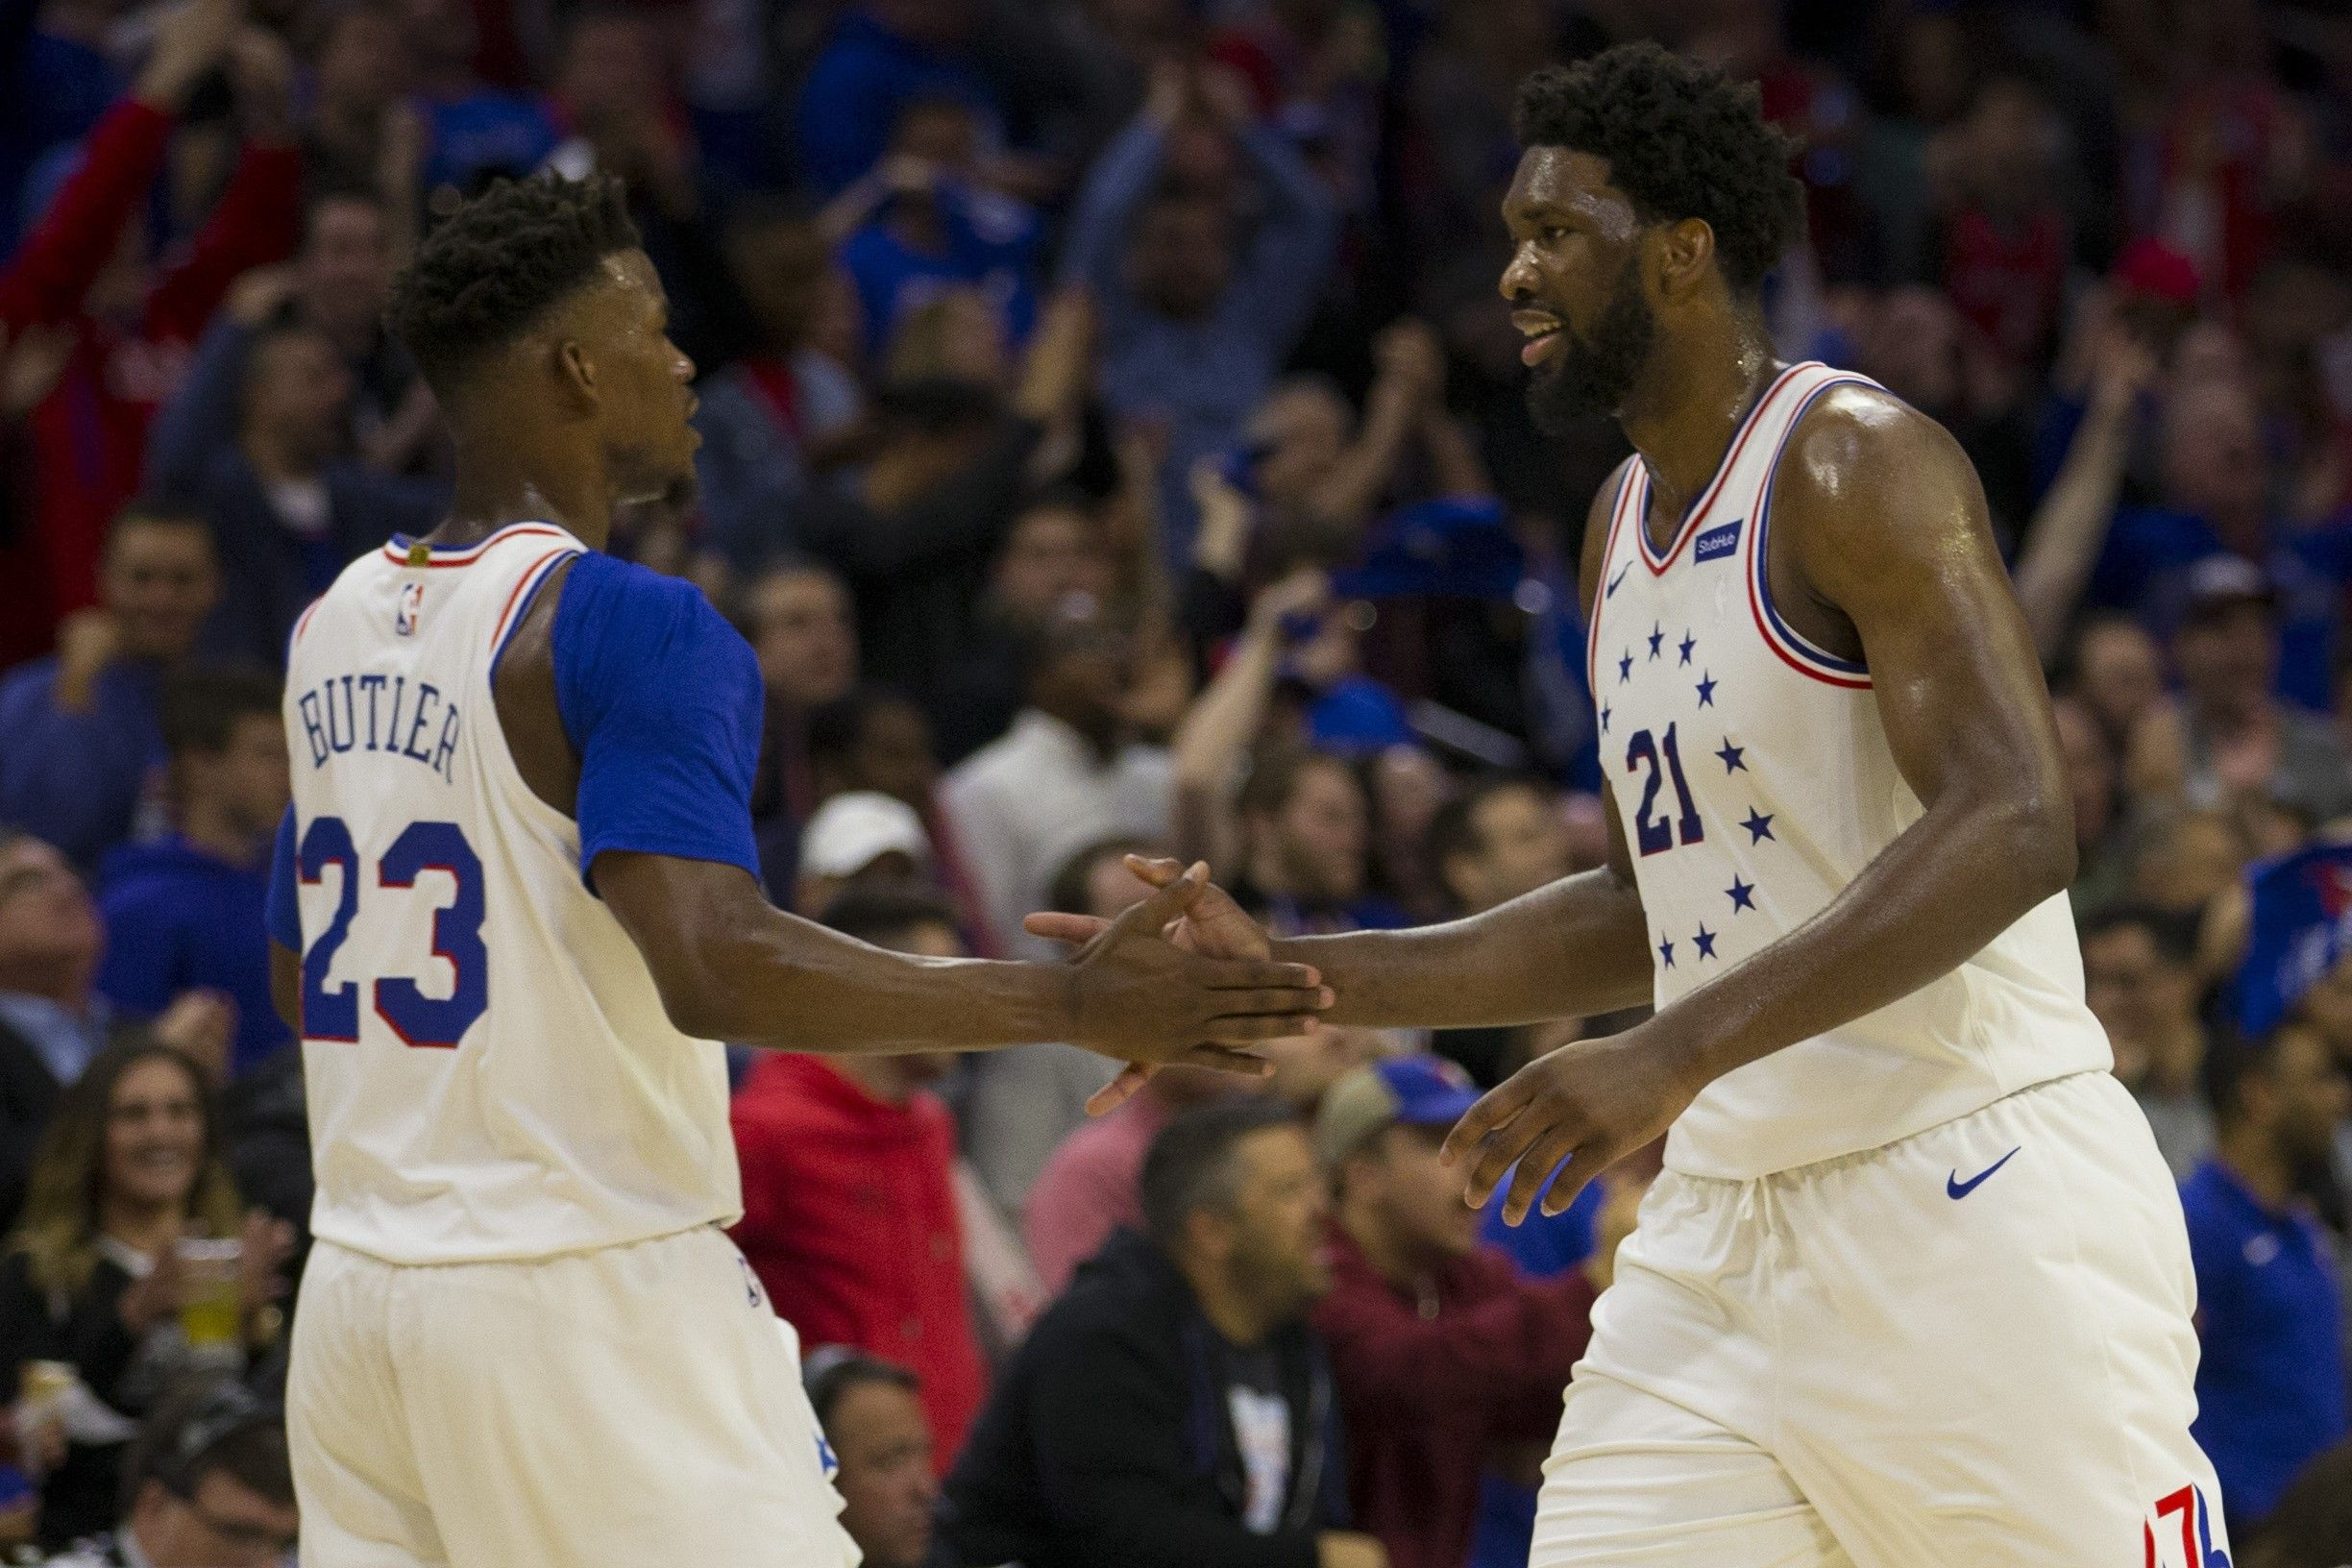 Sixers force Game 7 on Raptors after the 112-101 victory in Game 6